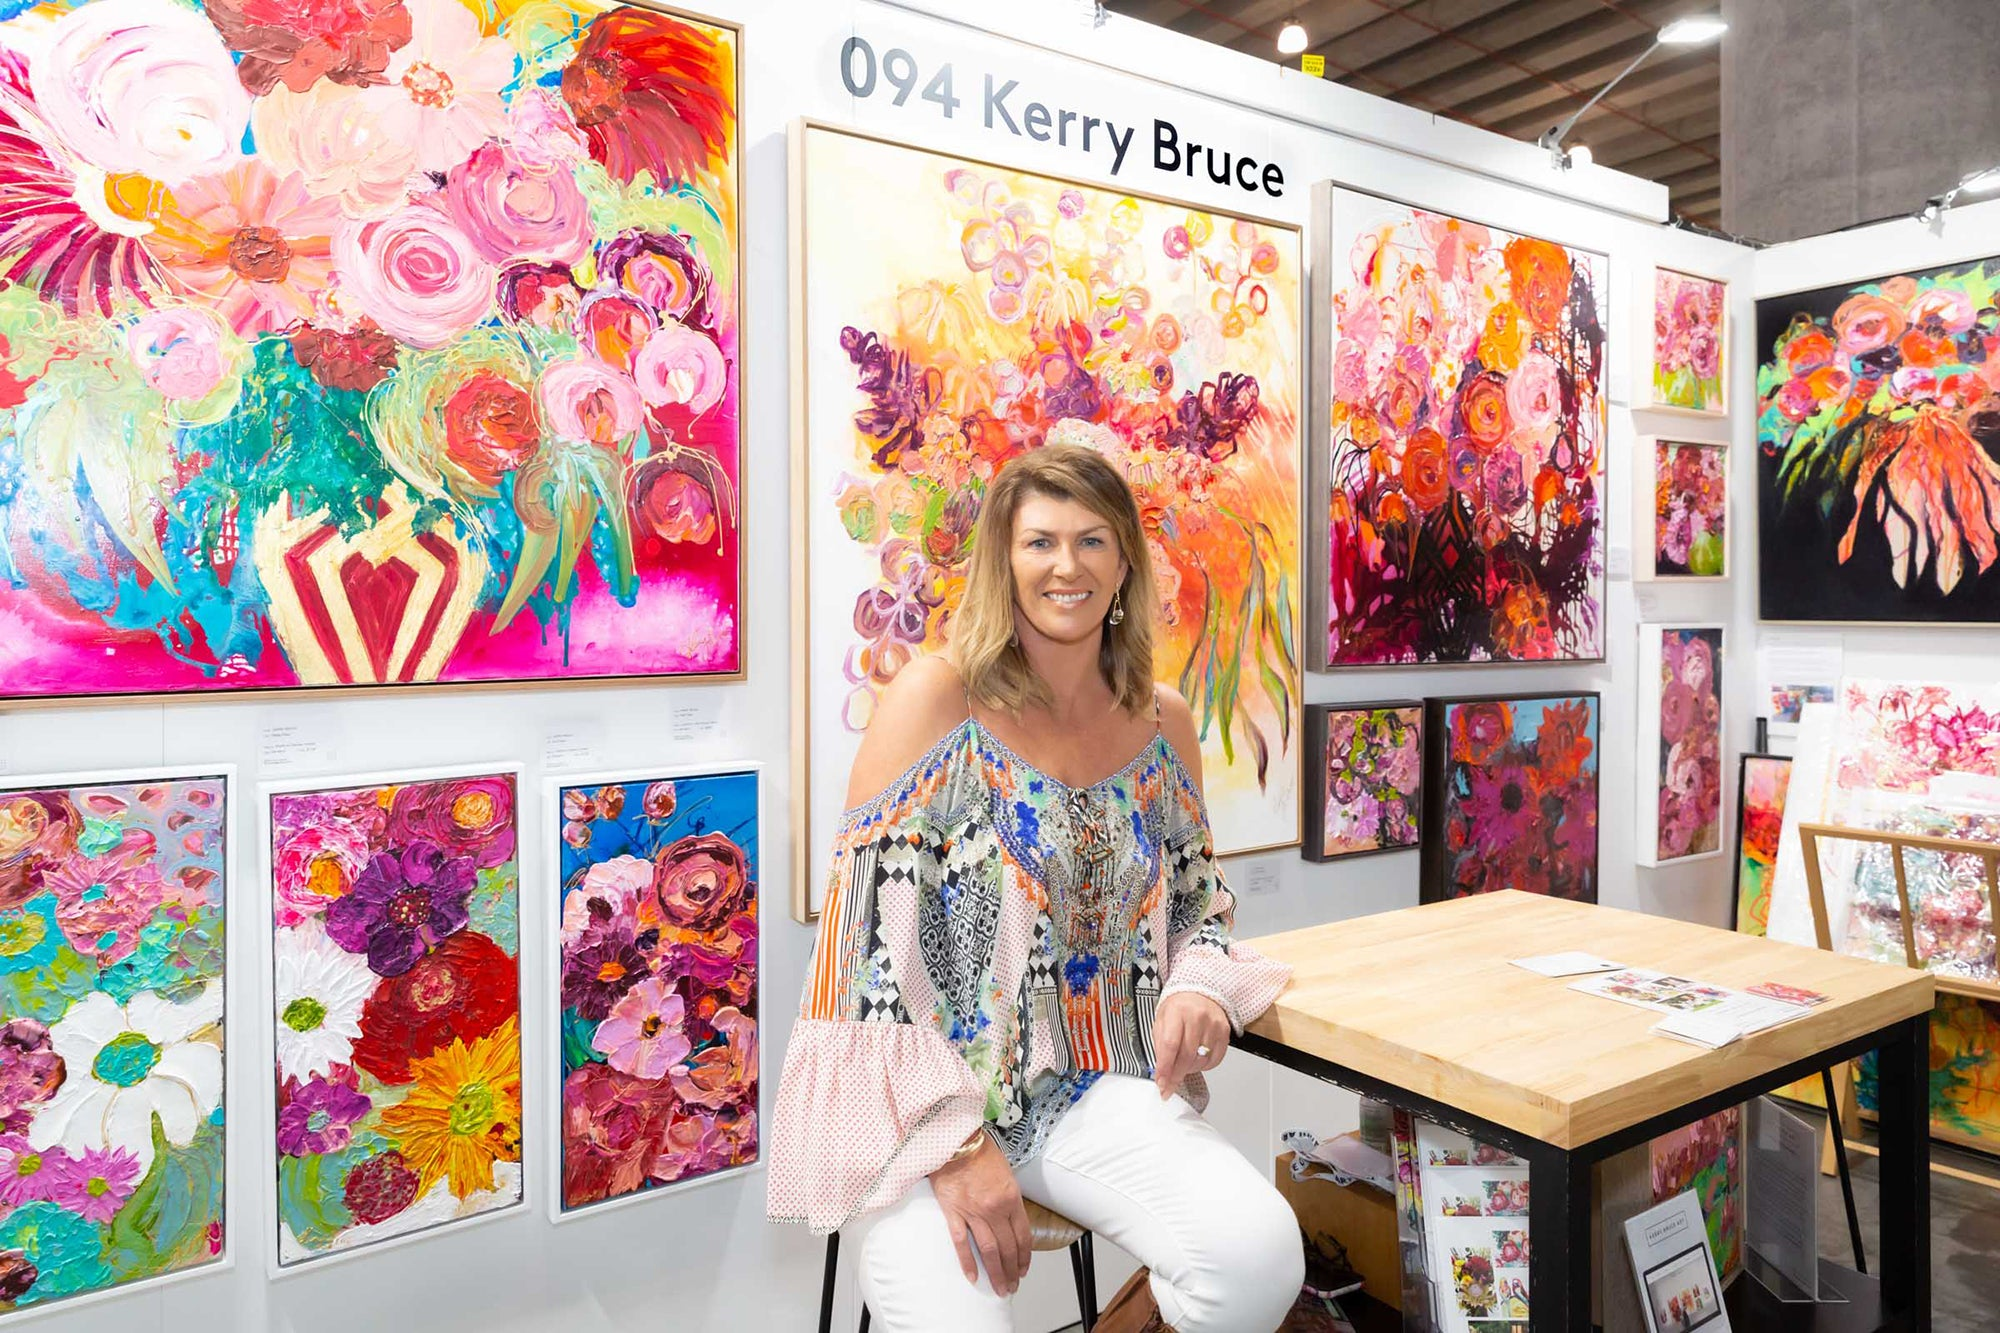 Kerry Bruce in her stand at The Other Art Fair (TOAF) Sydney 2021